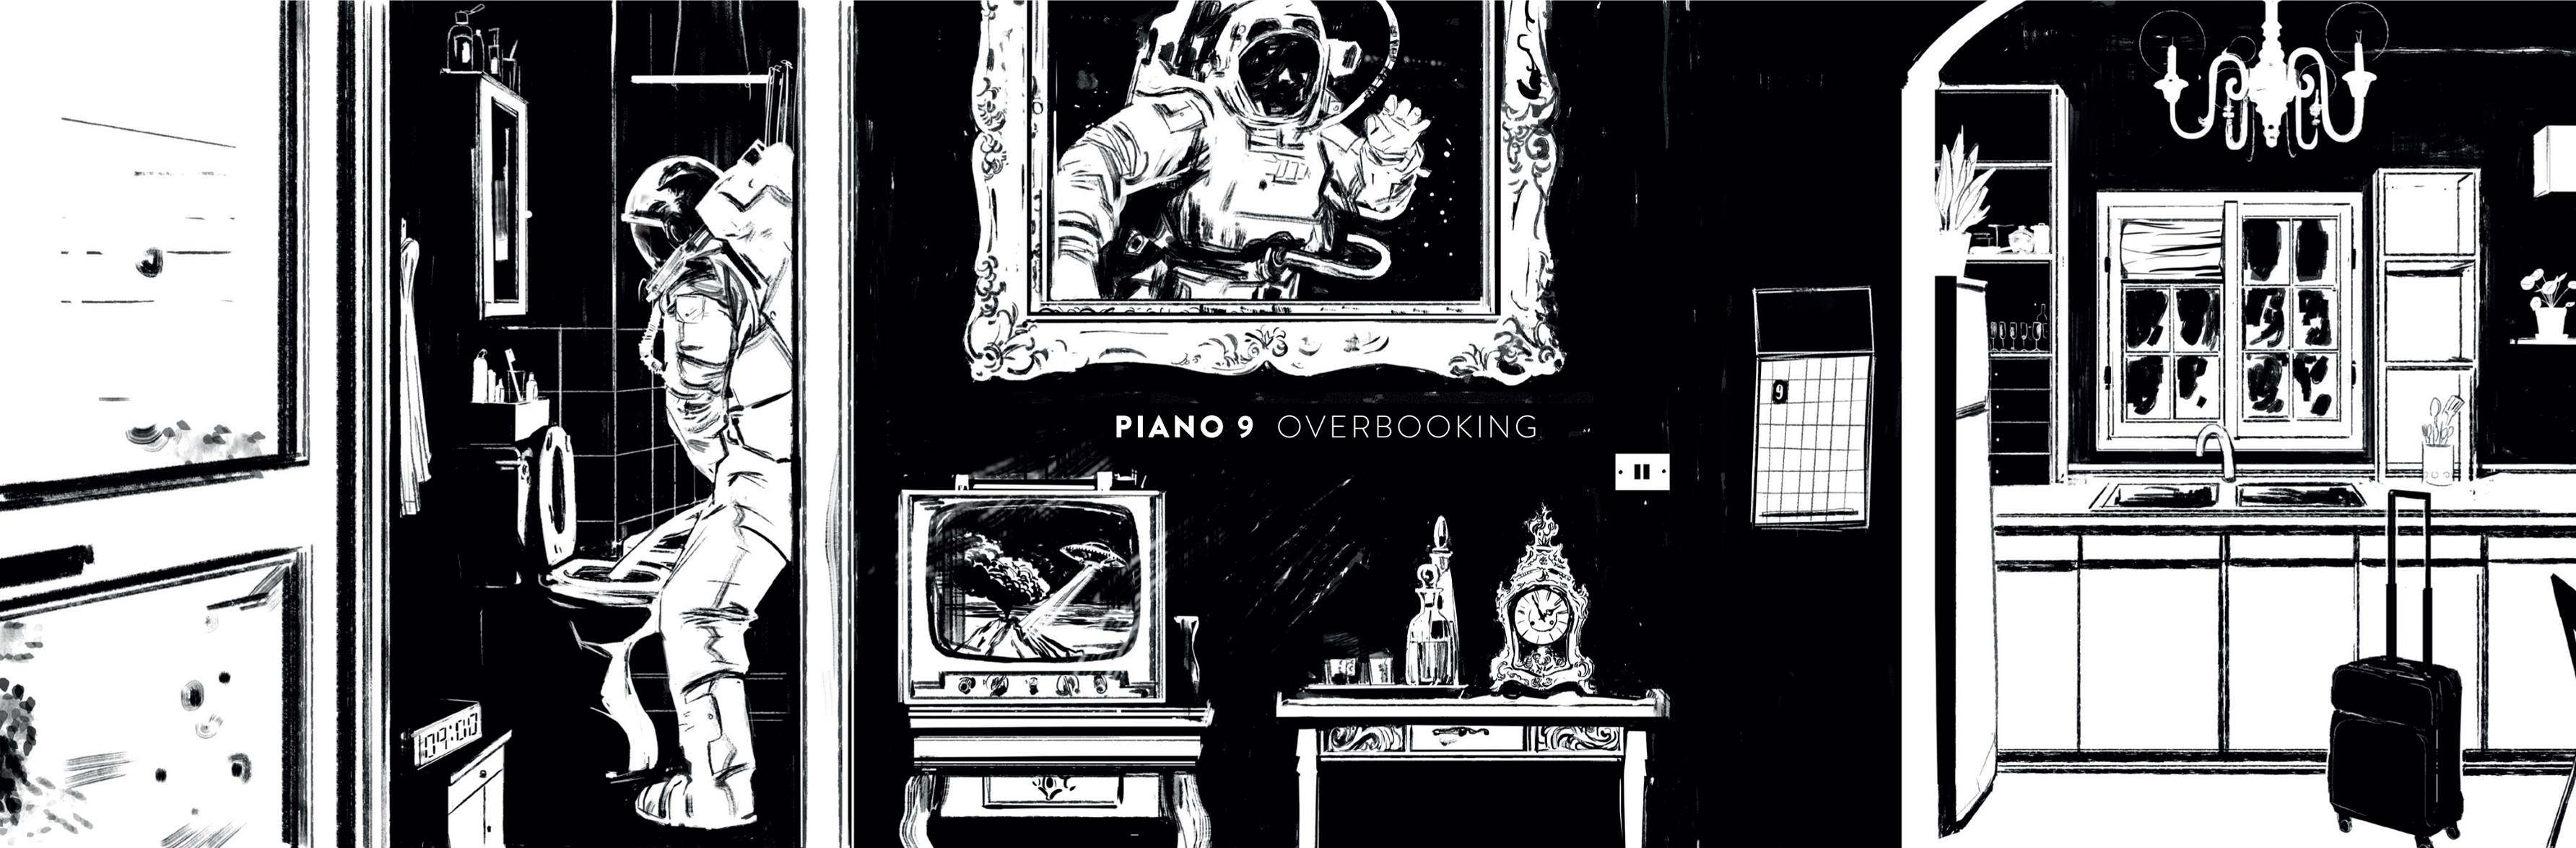 PIANO 9 – Overbooking (2019)